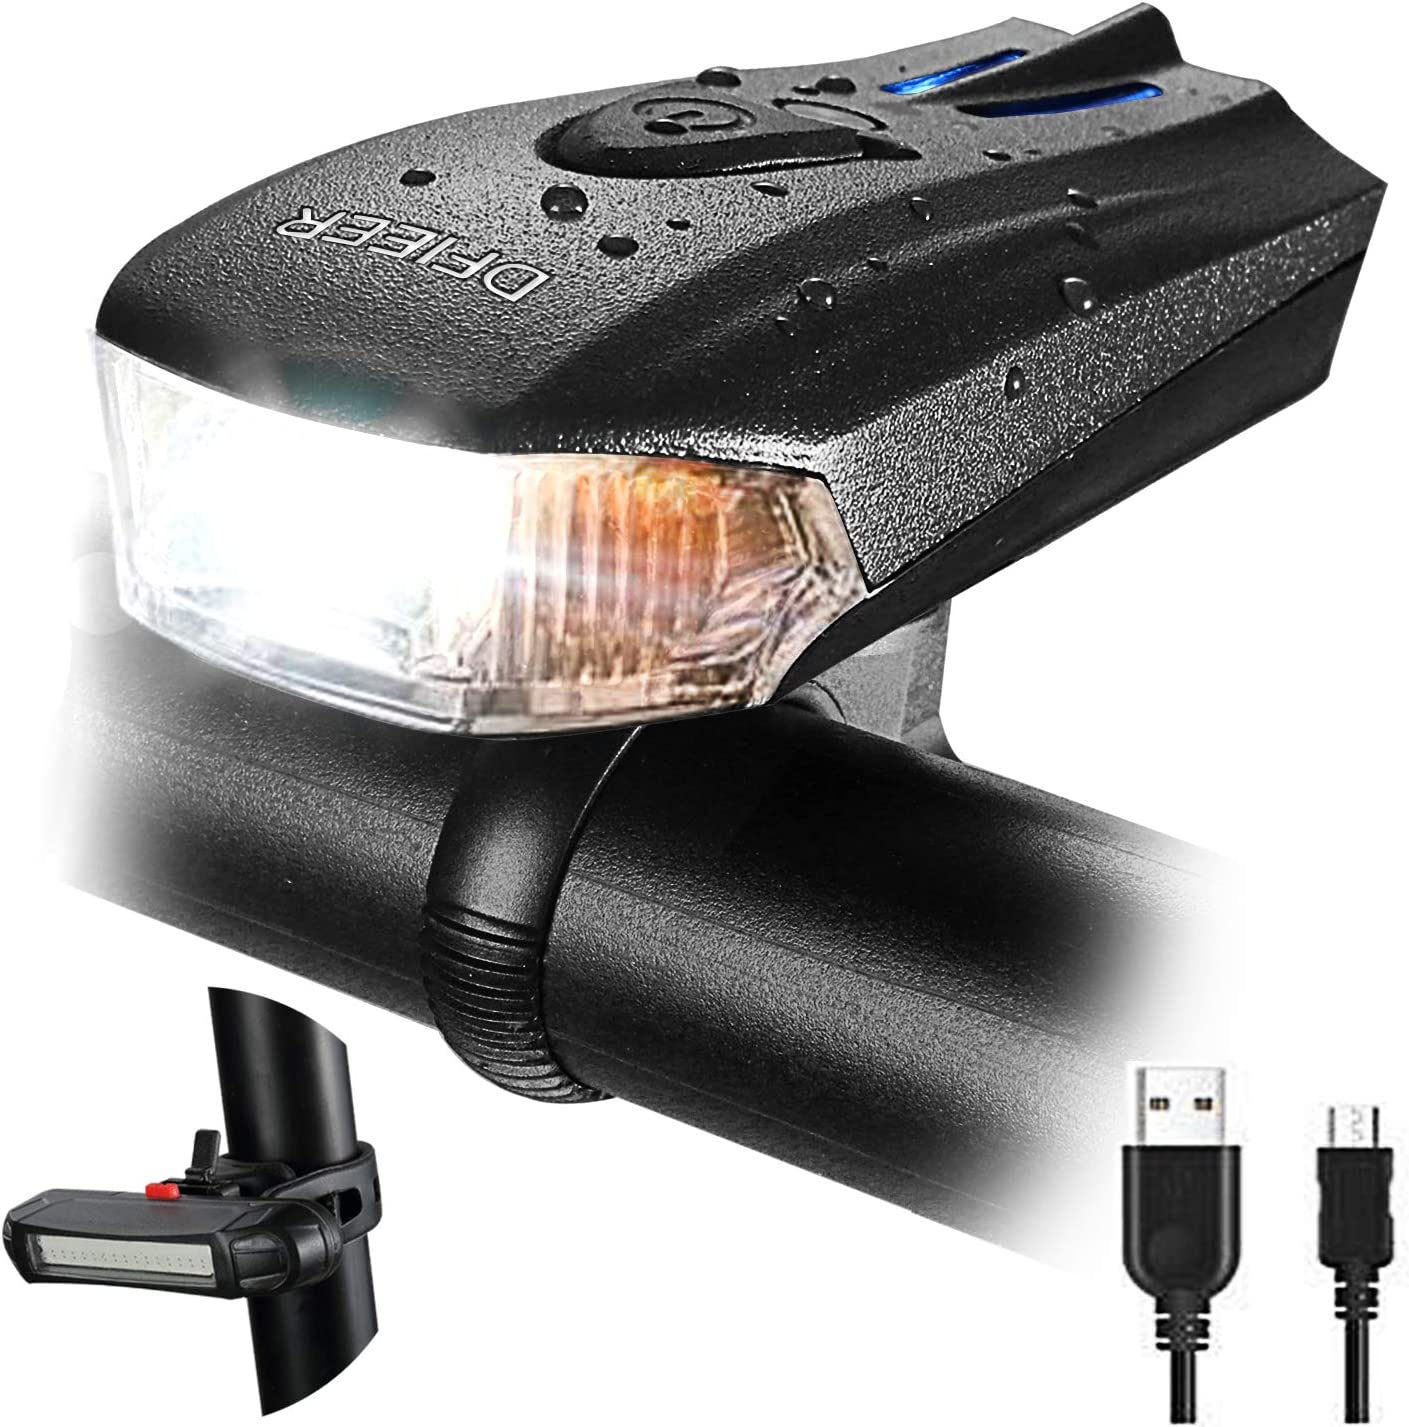 Automatic induction USB Rechargeable Bike Light Set Powerful Lumens Bicycle Headlight Free Tail Light, LED Front and Back Rear Lights Easy to Install for Kids Men Women Road Cycling Safety Flashlight